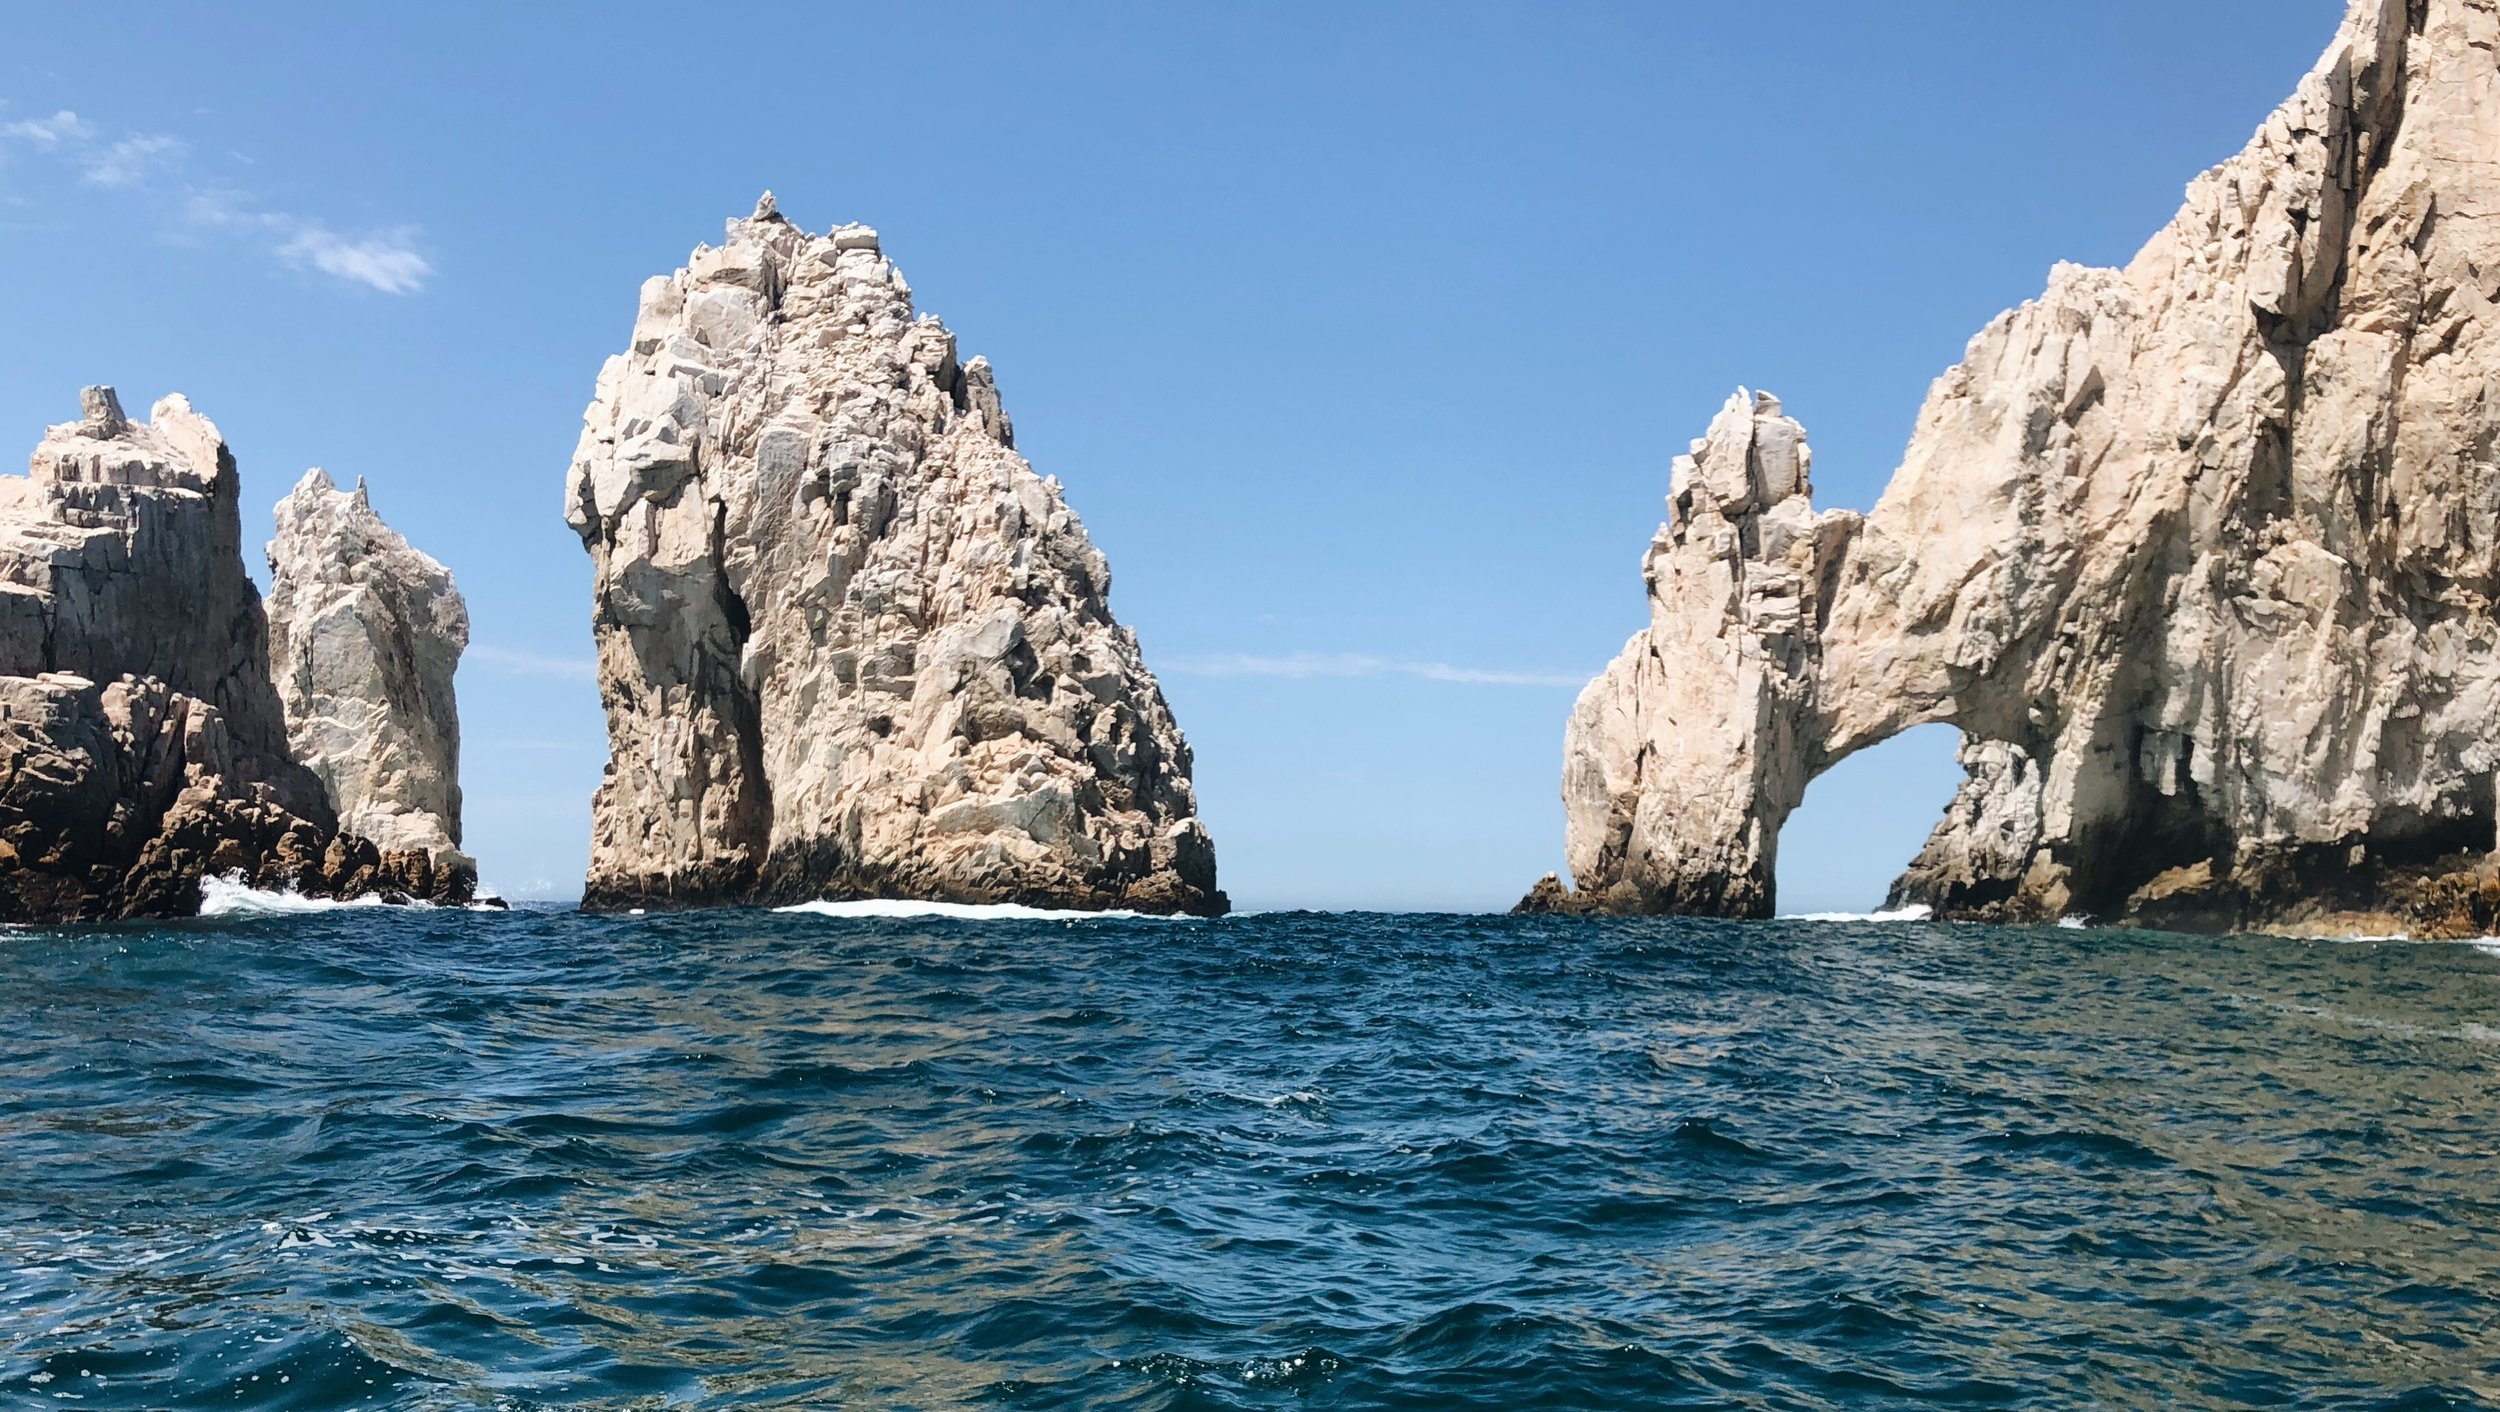 View of the ocean and beach in Cabo San Lucas, Mexico.